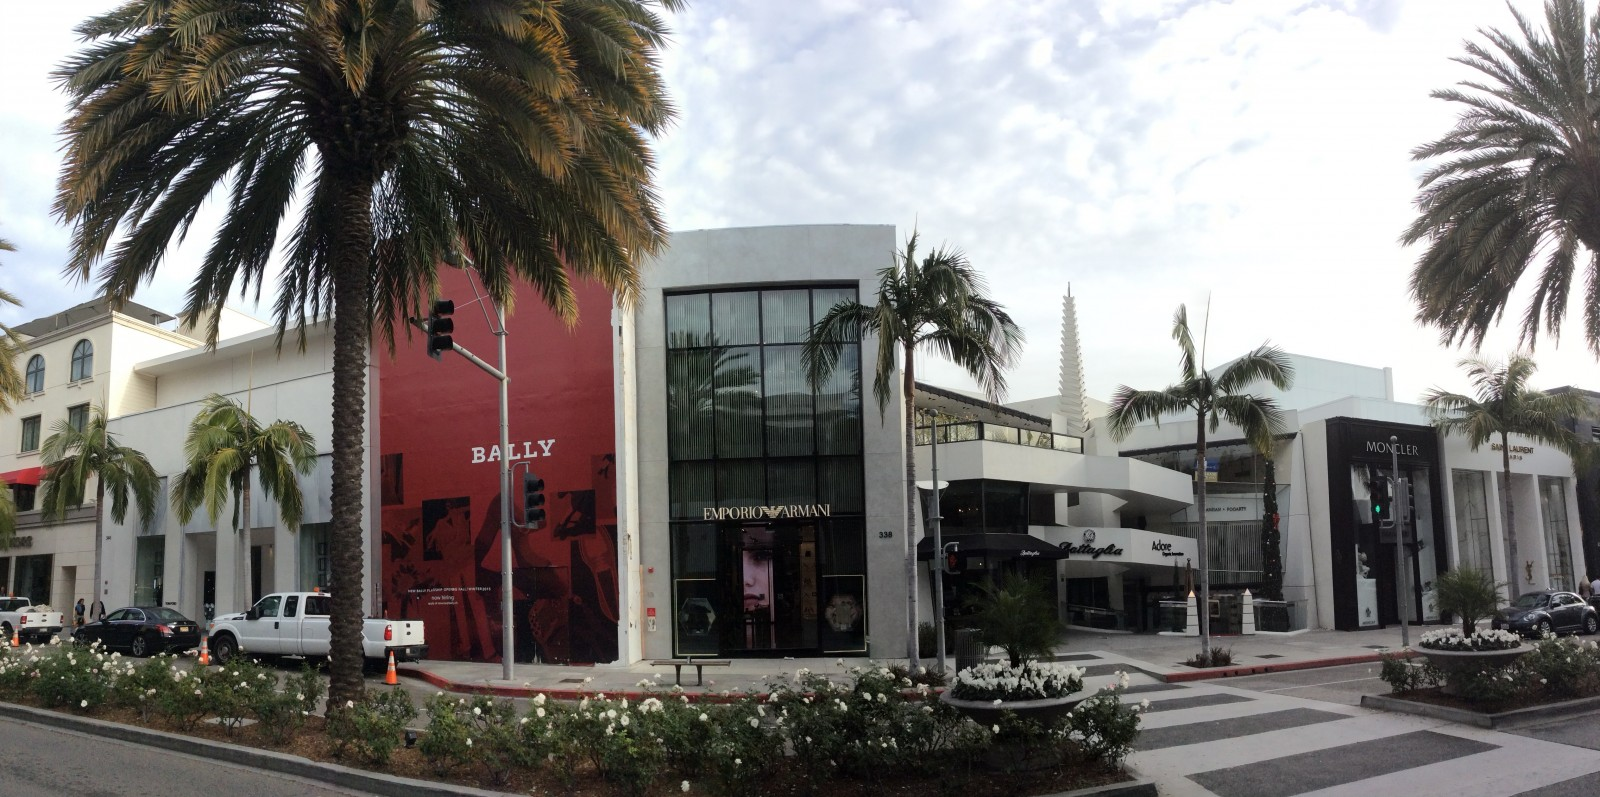 Emporio Armani 340 N Rodeo Dr Beverly Hills Ca 90210 On